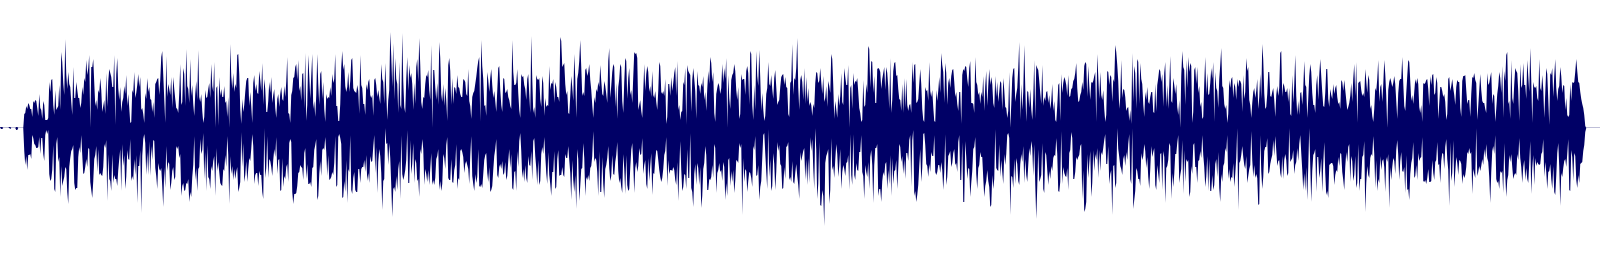 waveform of track #105286